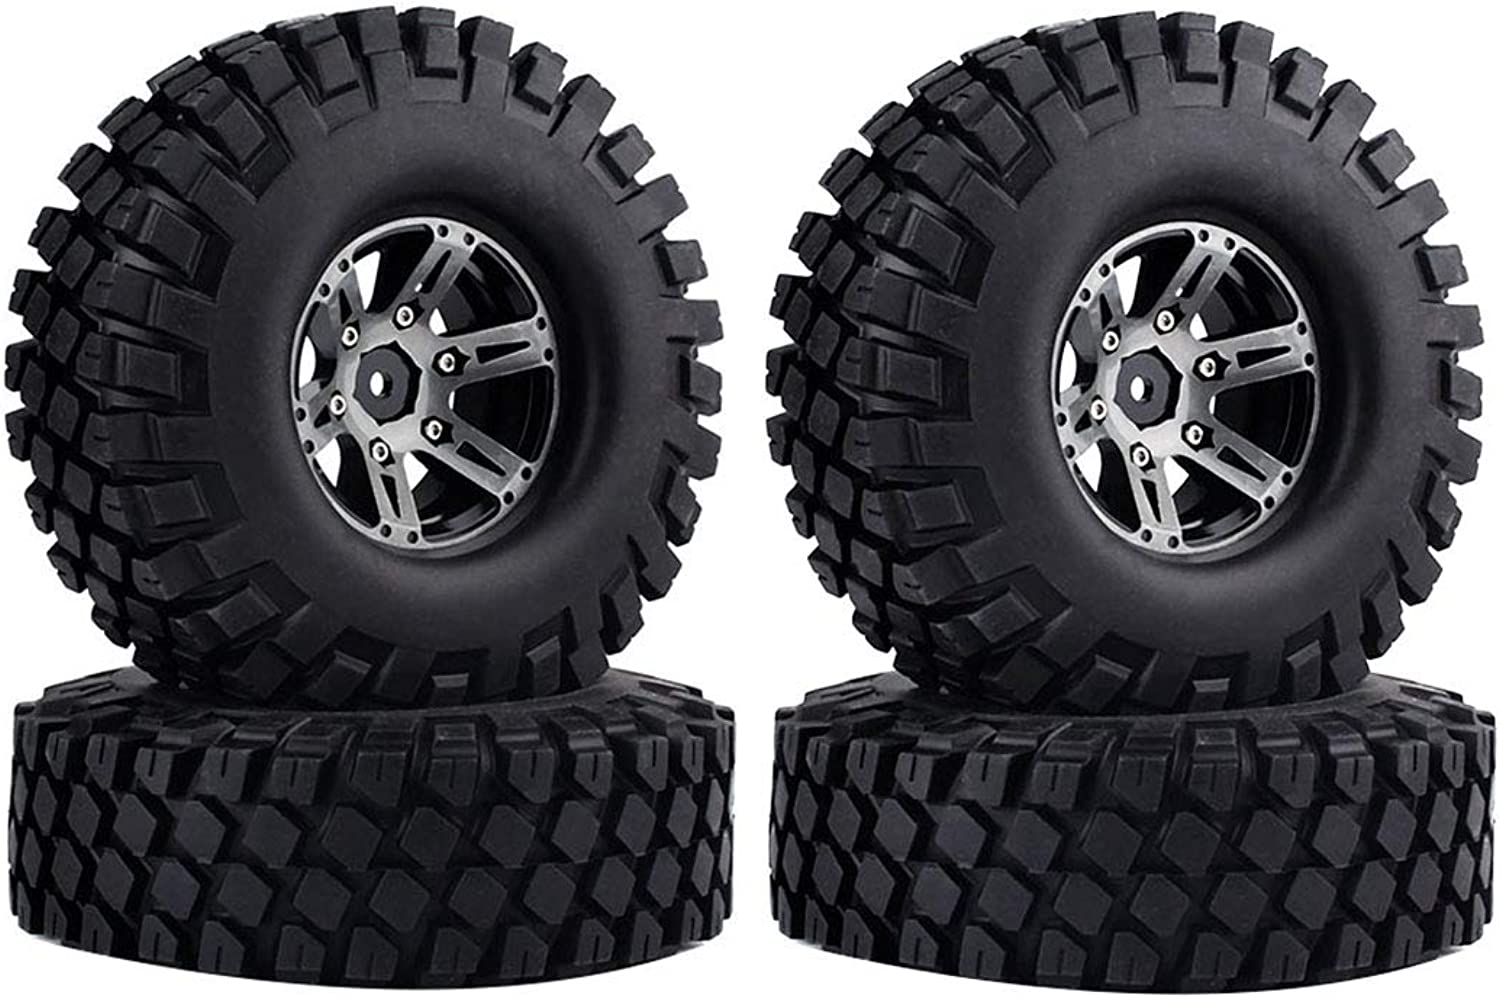 KEEDA 114mm 1.9 inch Metal Alloy Beadlock Wheels Rims and Tires for 1 10 Scale RC Rock Crawler Car Axial SCX10 Traxxas TRX4 RC4WD D90 TF2 Upgrade Parts